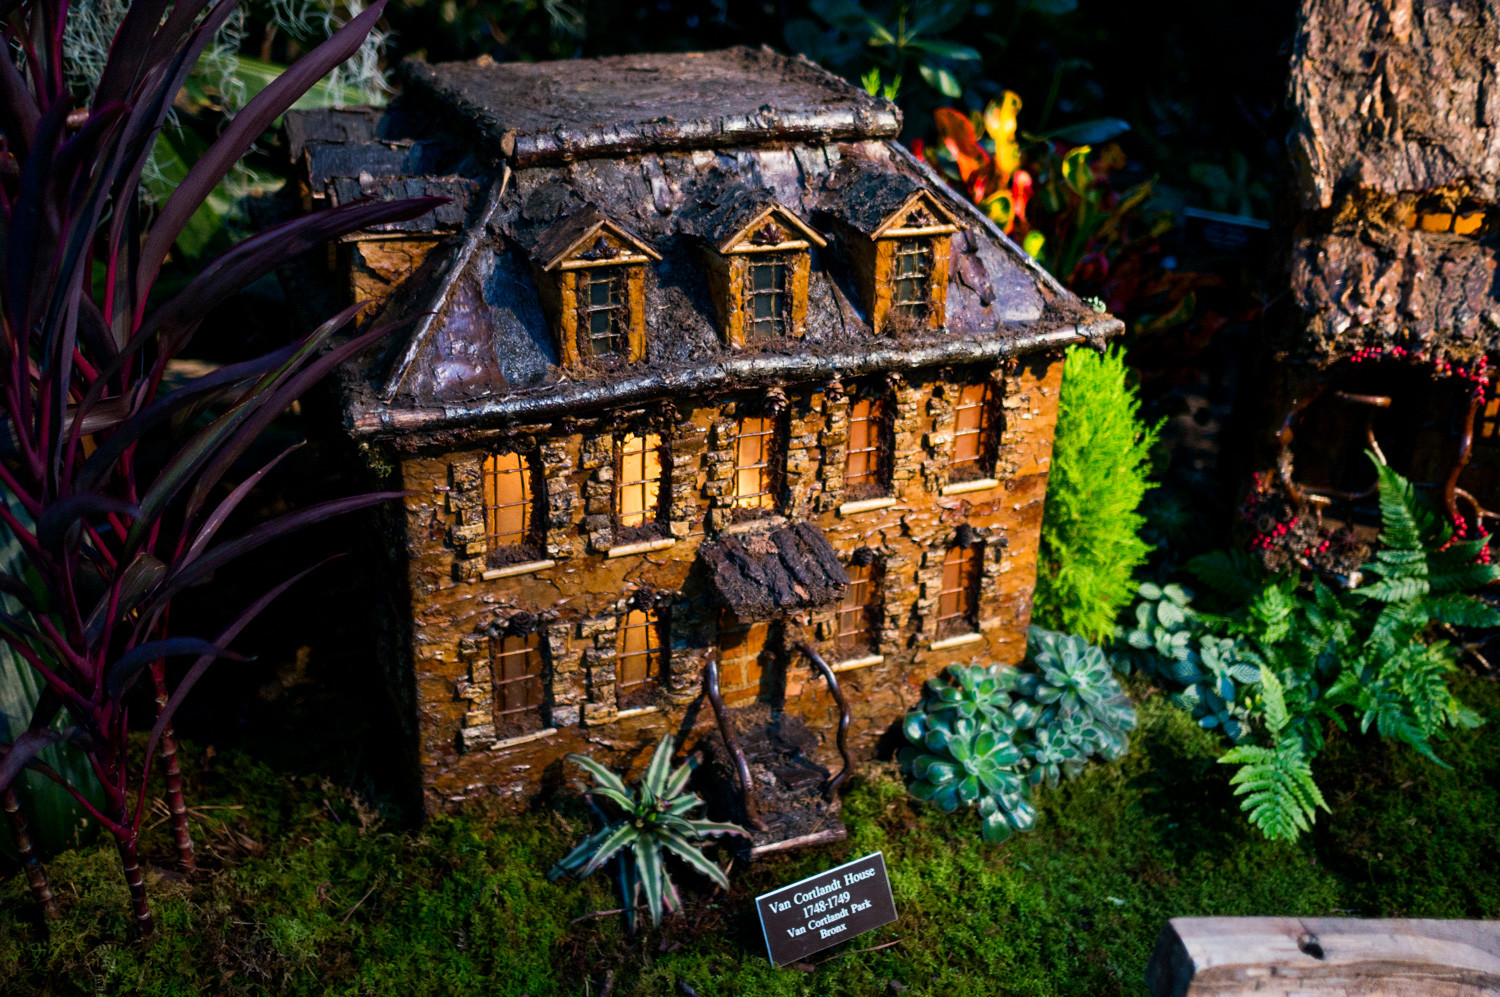 A replica of the Van Cortlandt House rests below a railway in the Holiday Train Show at the New York Botanical Garden. Built in 1748 and located just off the park that bears the same family name, the Van Cortlandt House is one of the oldest buildings in the Bronx.